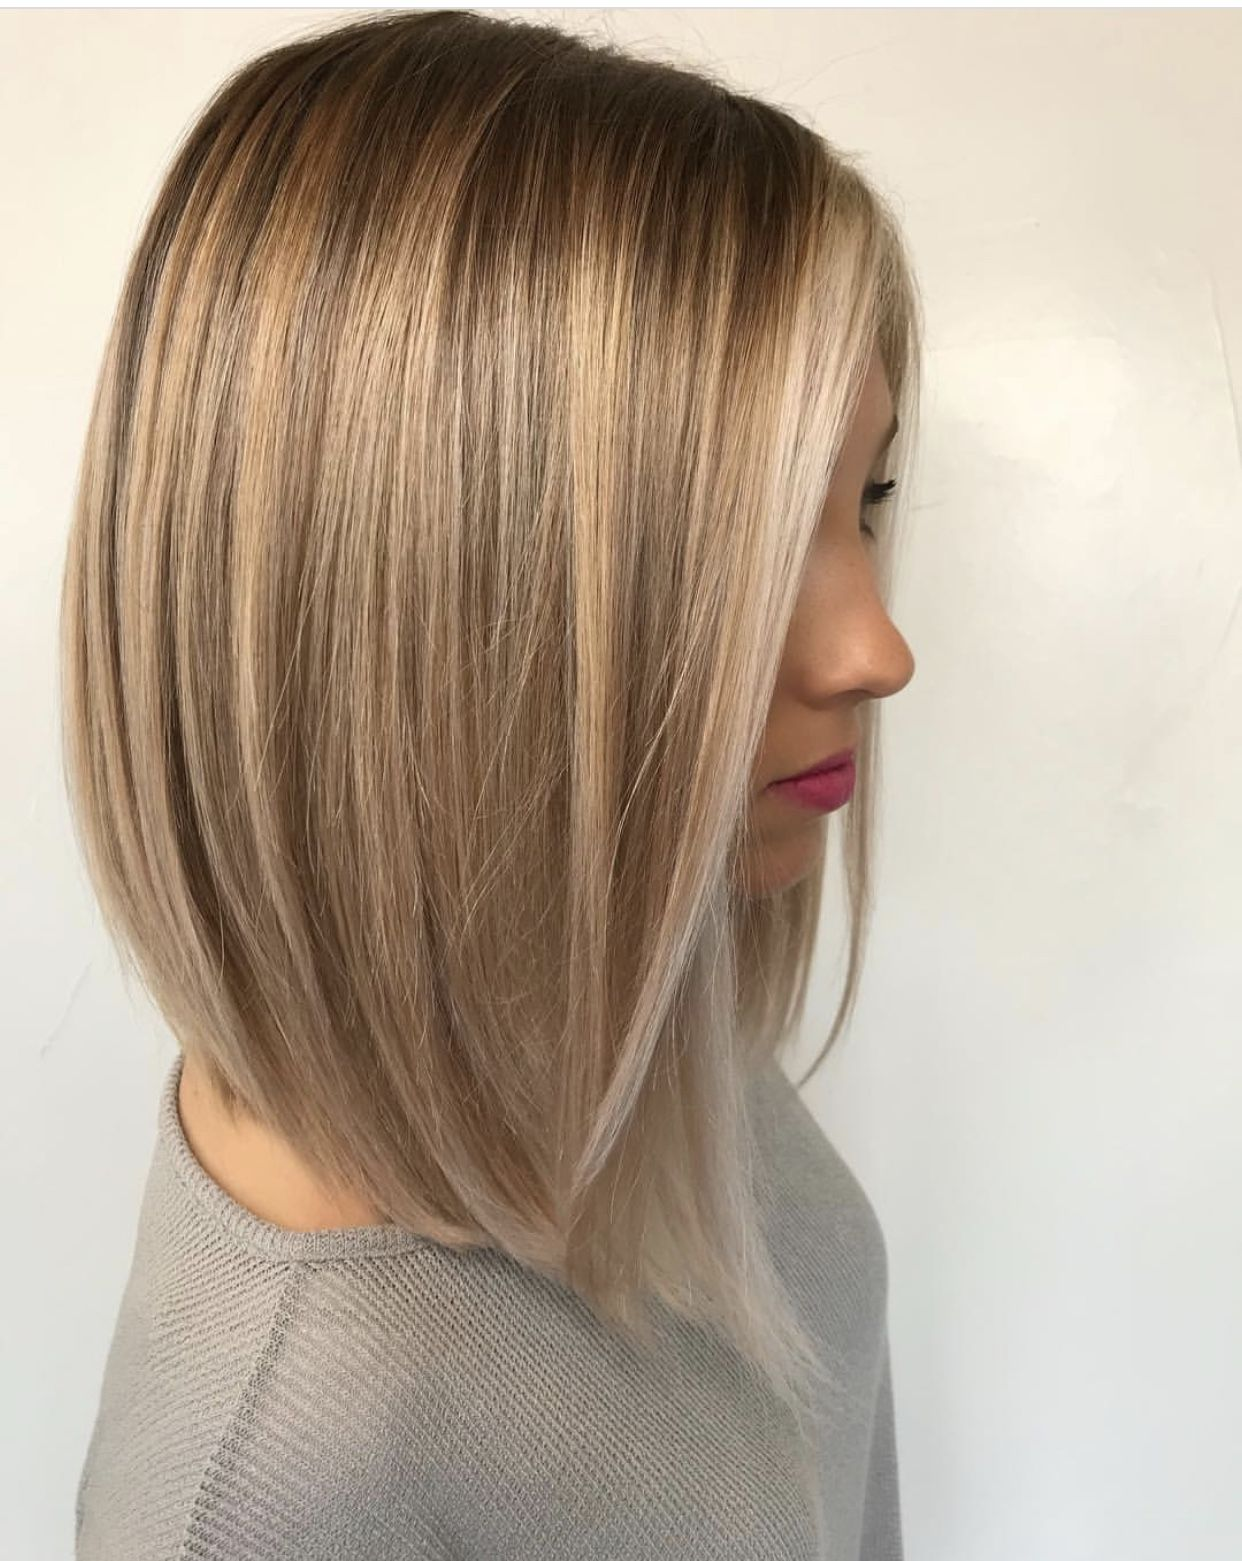 Long bob haircut, blonde hair color, dirty blonde color